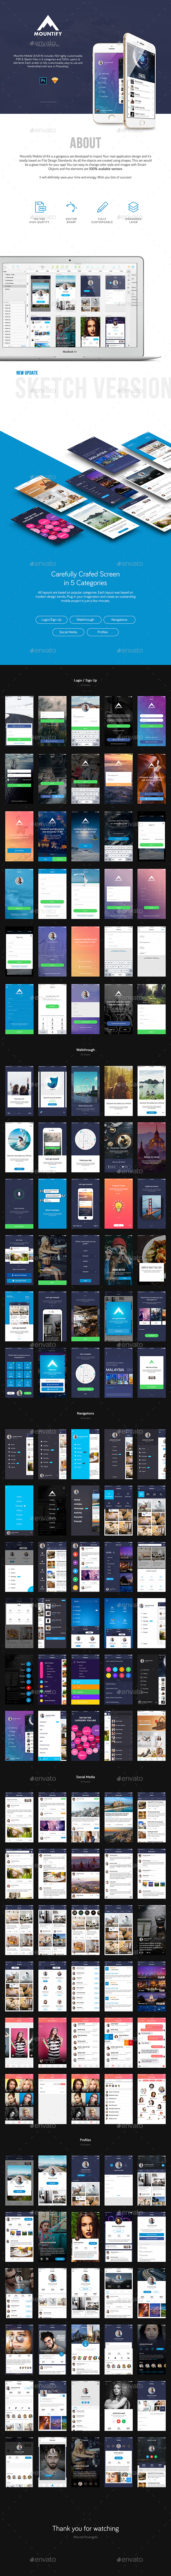 Travel Mobile App - Ramble (User Interfaces)